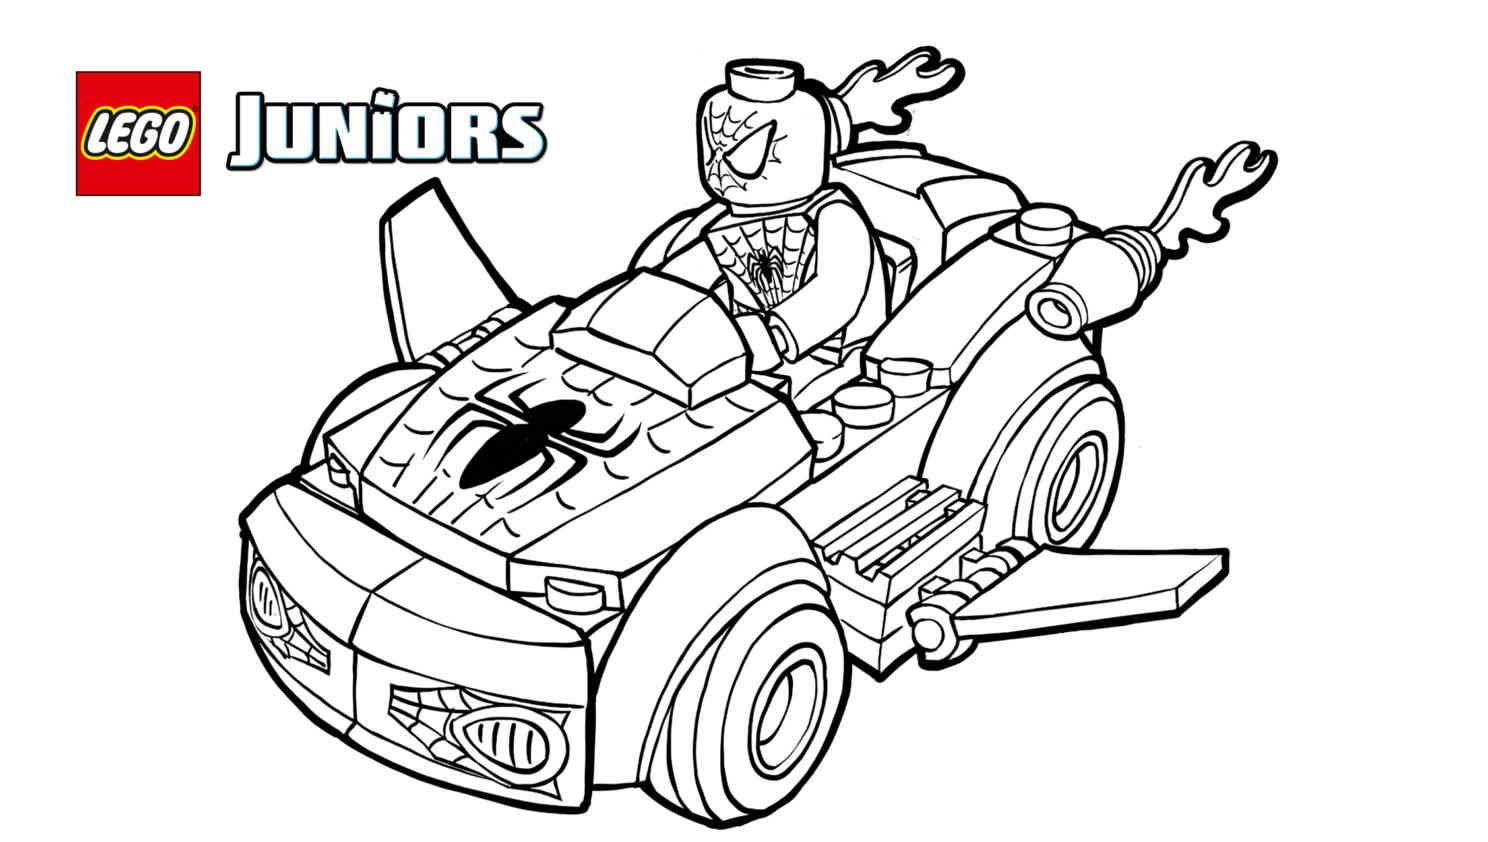 lego spiderman coloring pages - Lego Spiderman Coloring Pages